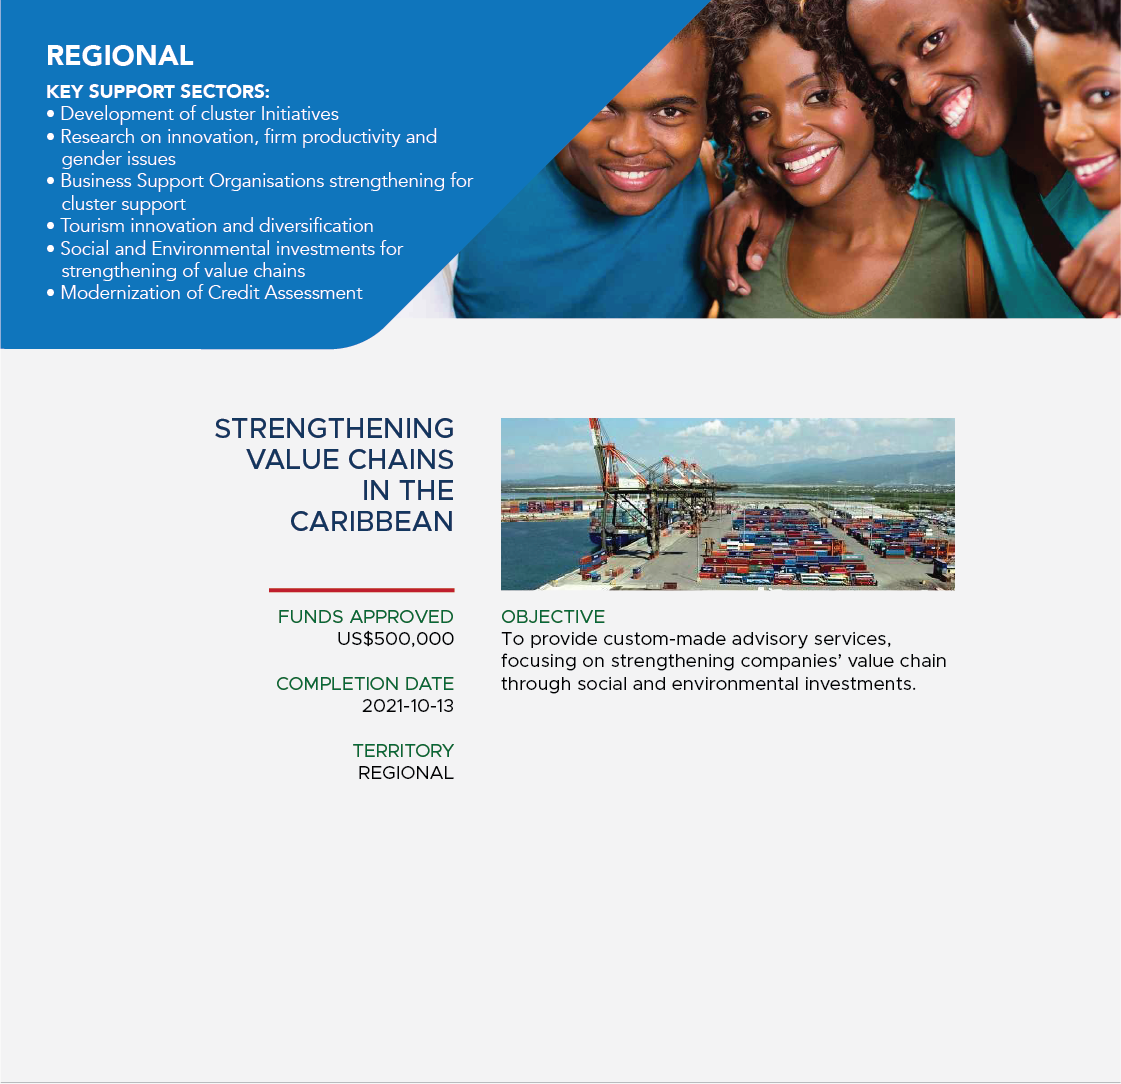 Strengthening value chains in the Caribbean